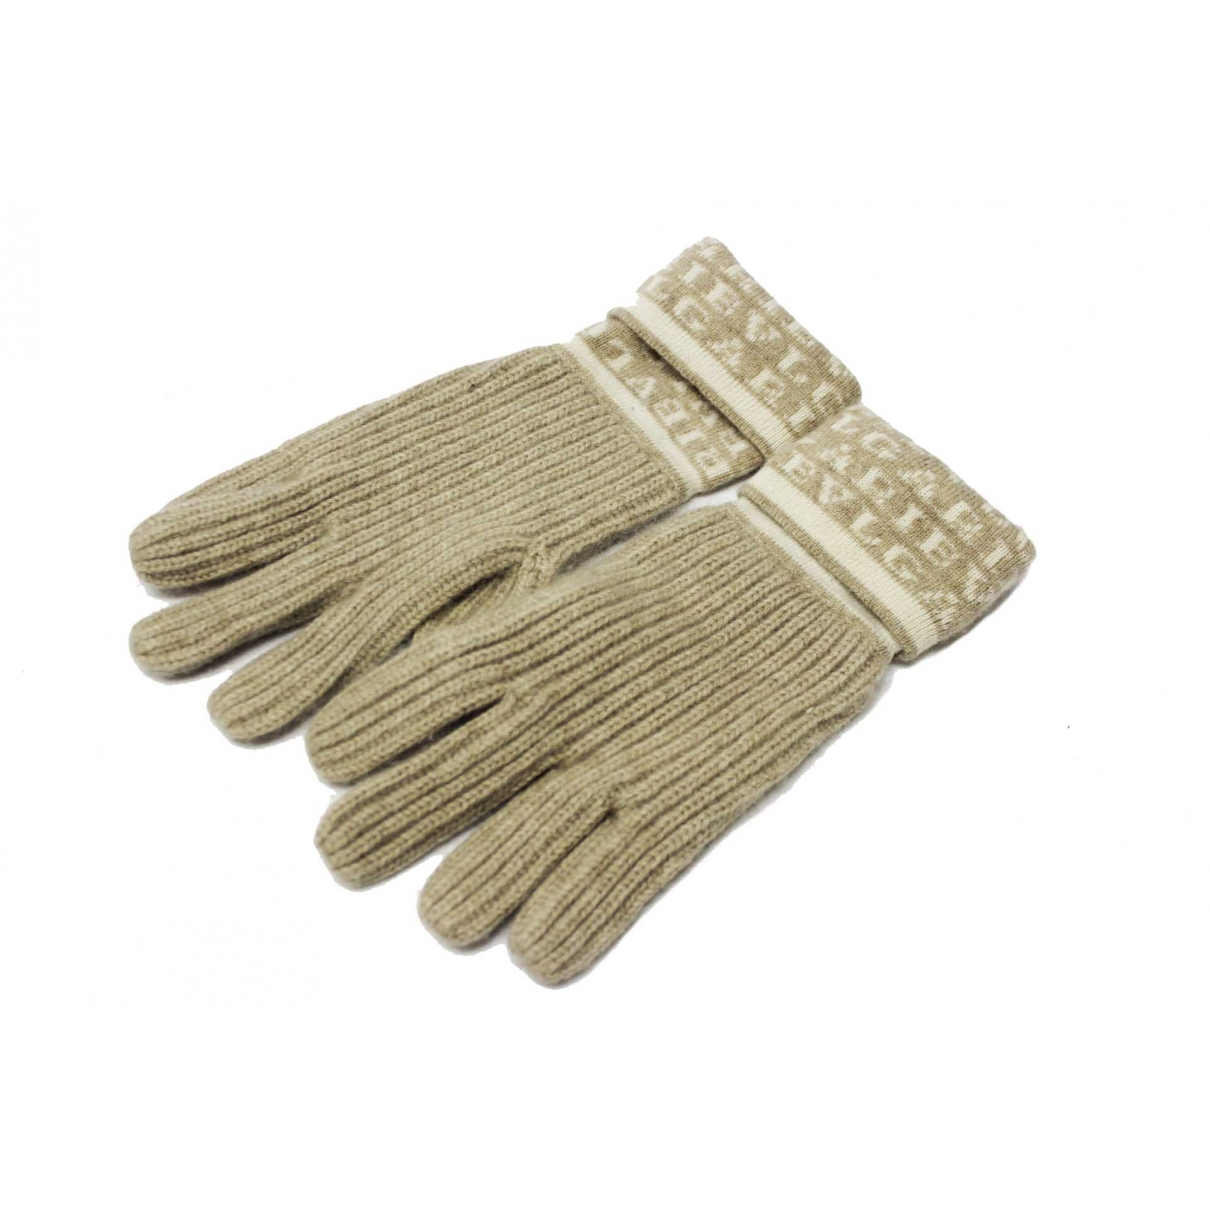 Bvlgari \N Beige Cashmere Gloves for Women M International